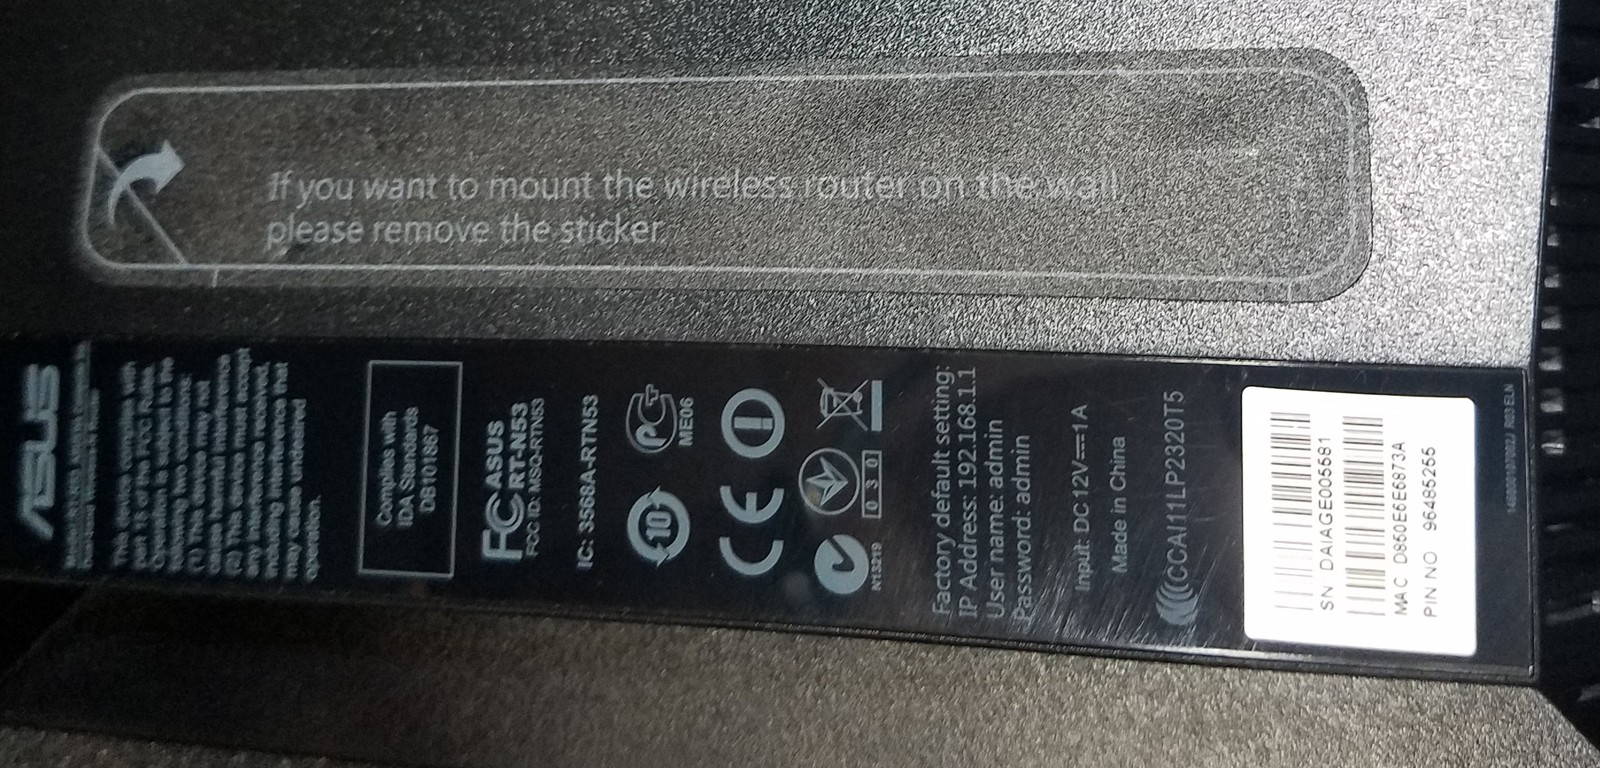 Asus RT-N53 Dual Band Wireless N600 Router and similar items